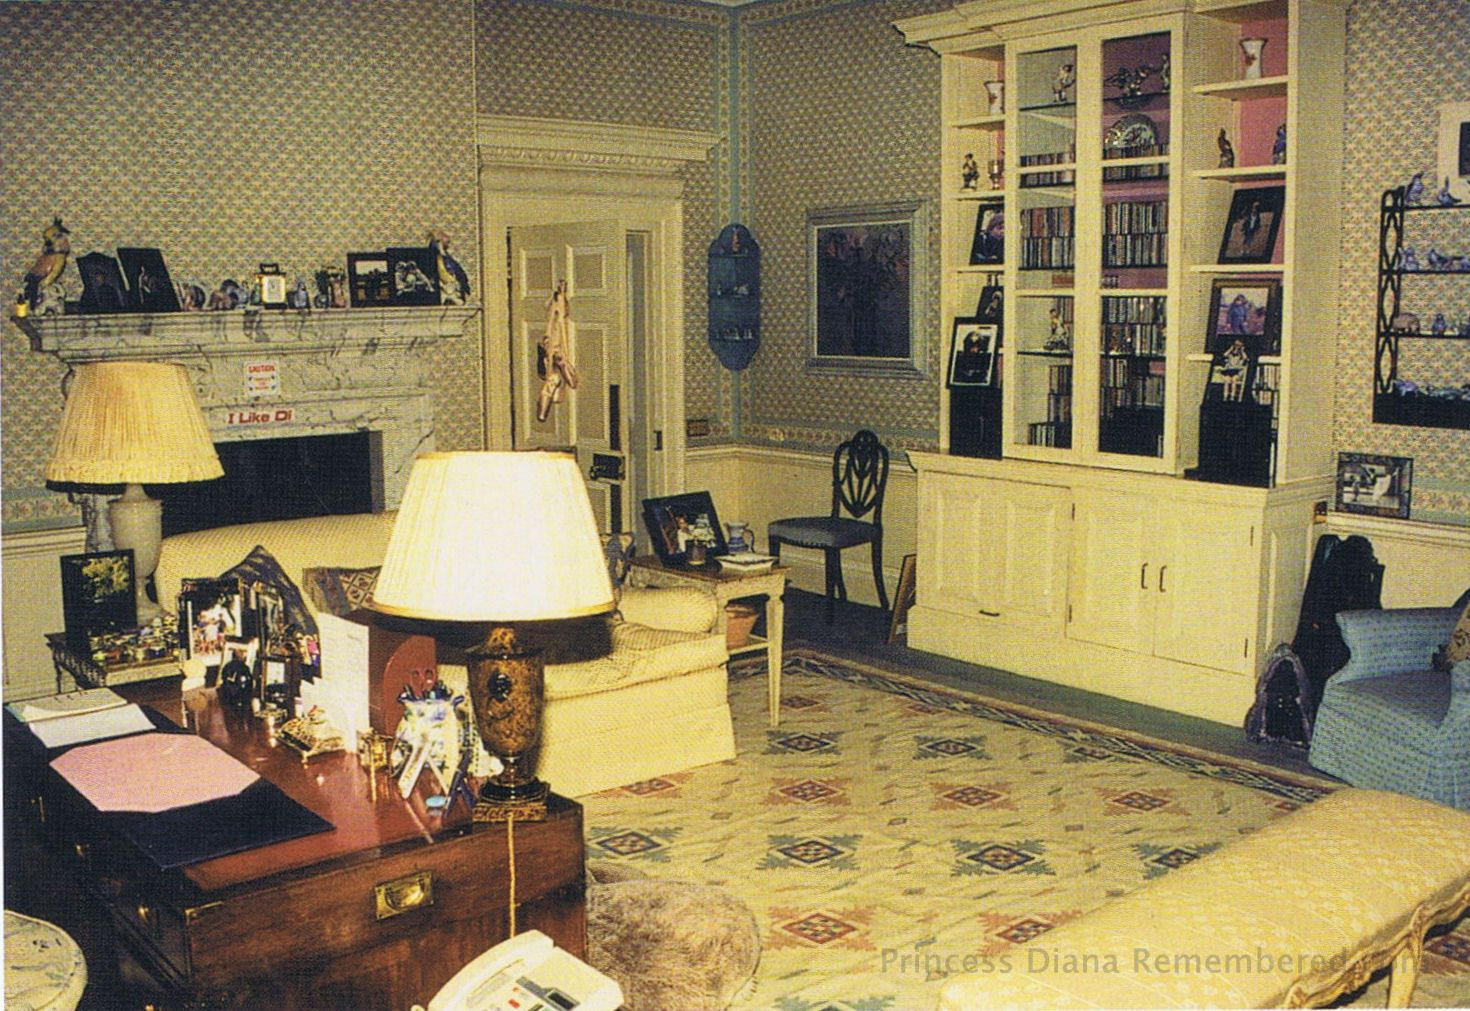 Buckingham palace queen bedroom and palaces on pinterest - Inside Kensington Palace Apartments Princess Diana S